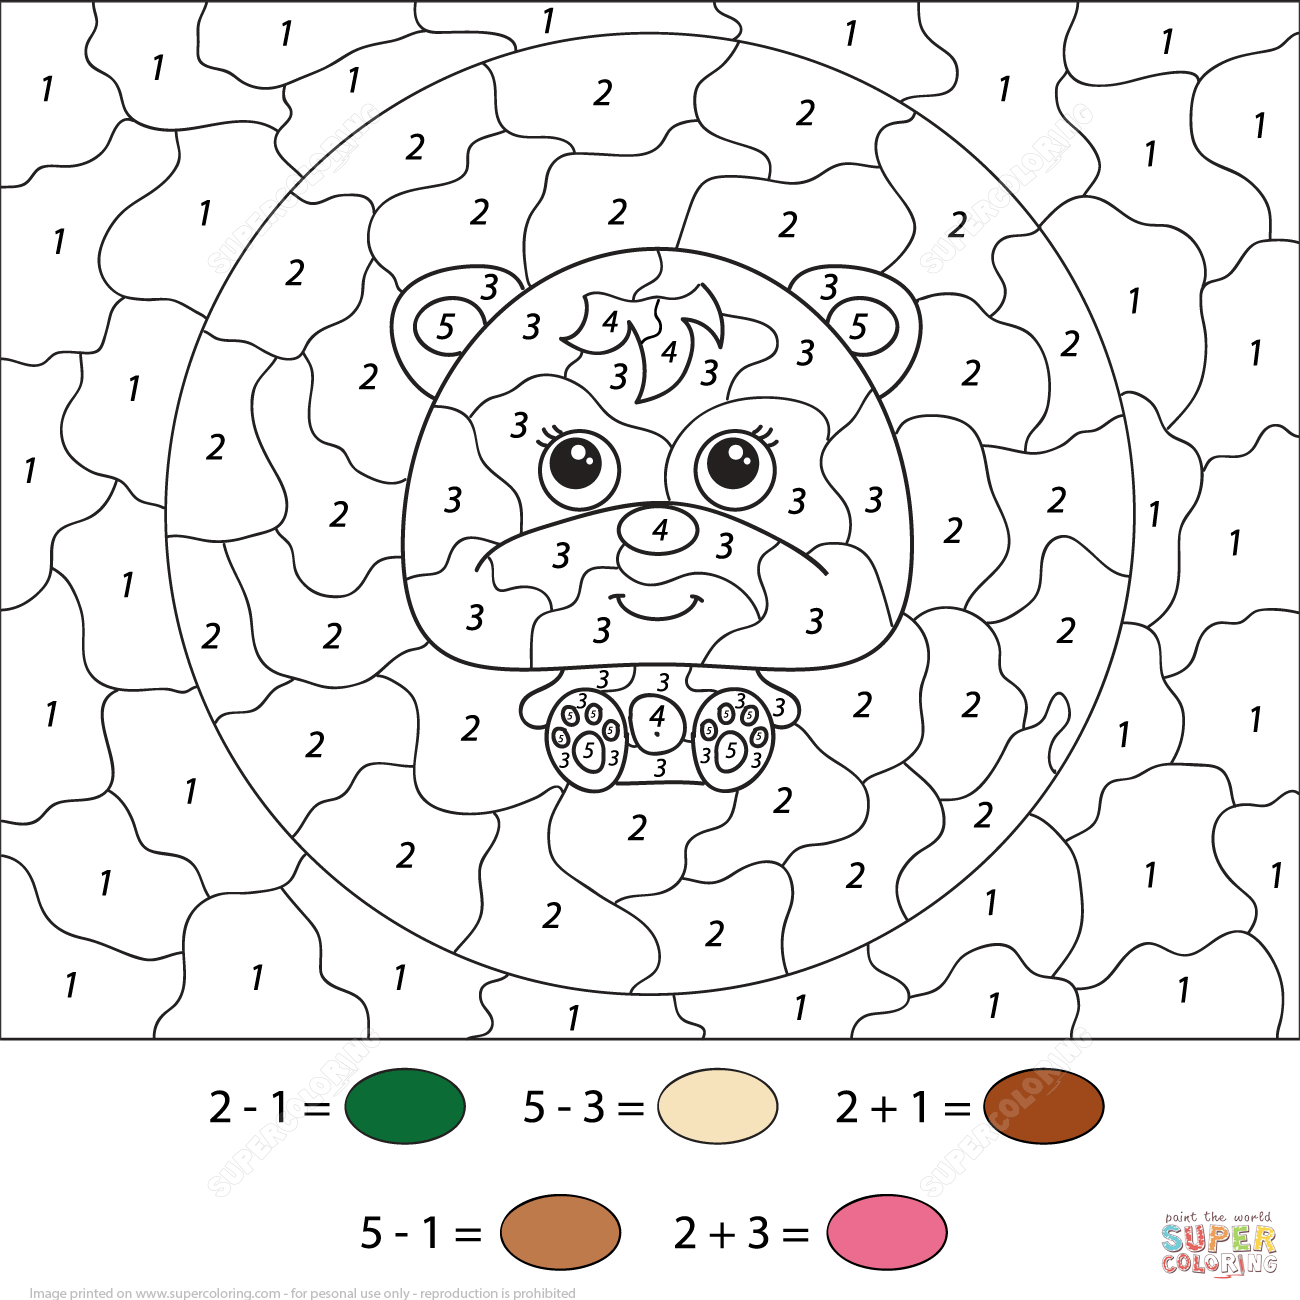 Coloring pages using addition - Helicopter With Addition Color By Number Coloring Page Free